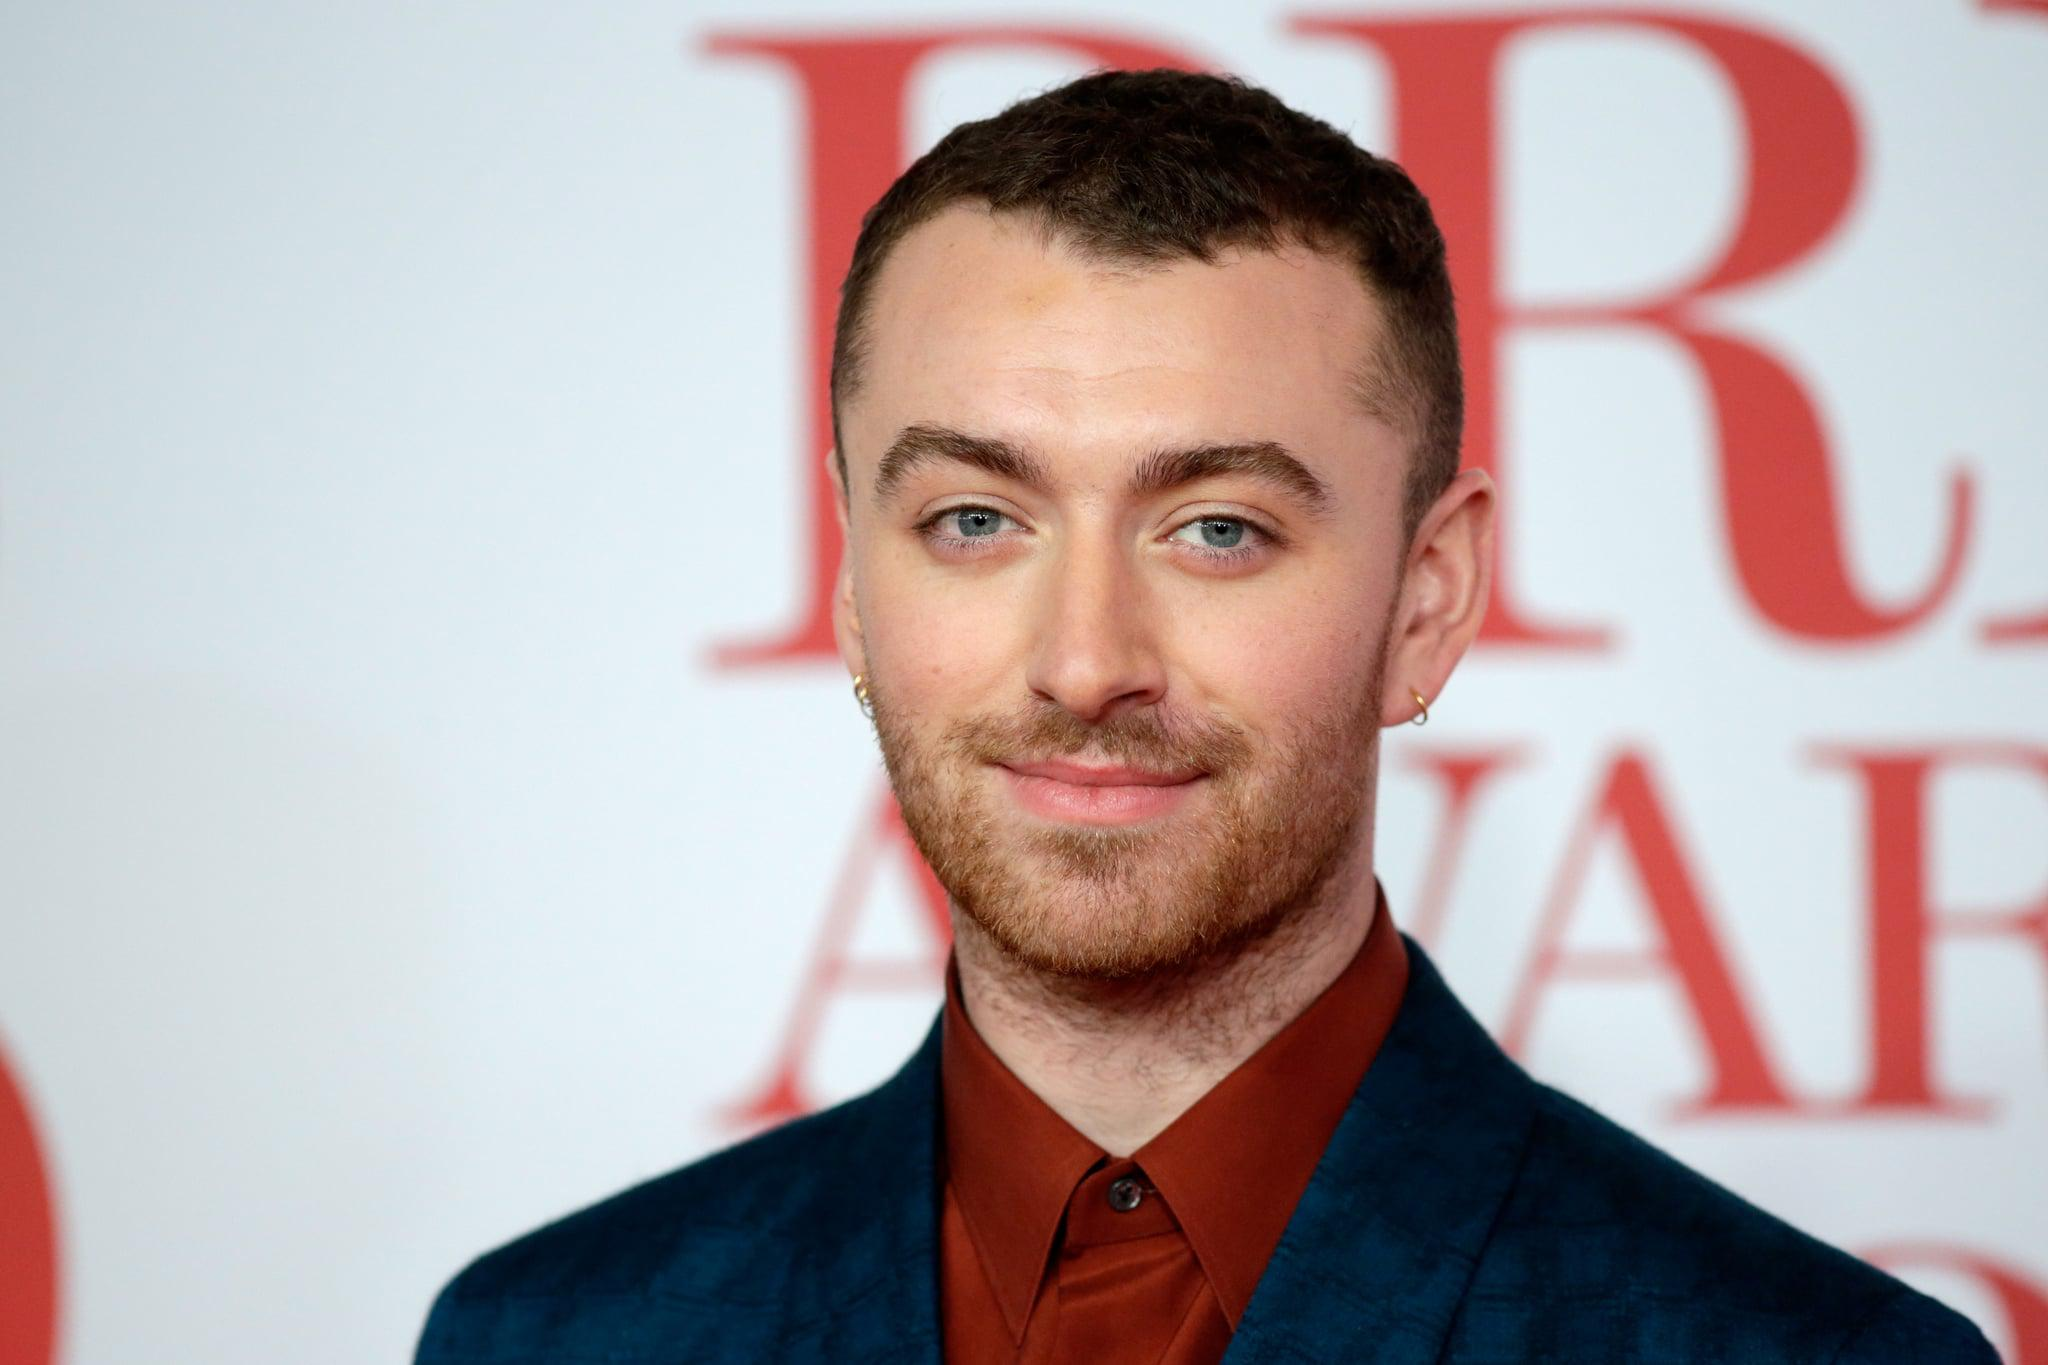 LONDON, ENGLAND - FEBRUARY 21:  *** EDITORIAL USE ONLY IN RELATION TO THE BRIT AWARDS 2018***  Sam Smith attends The BRIT Awards 2018 held at The O2 Arena on February 21, 2018 in London, England.  (Photo by John Phillips/Getty Images)